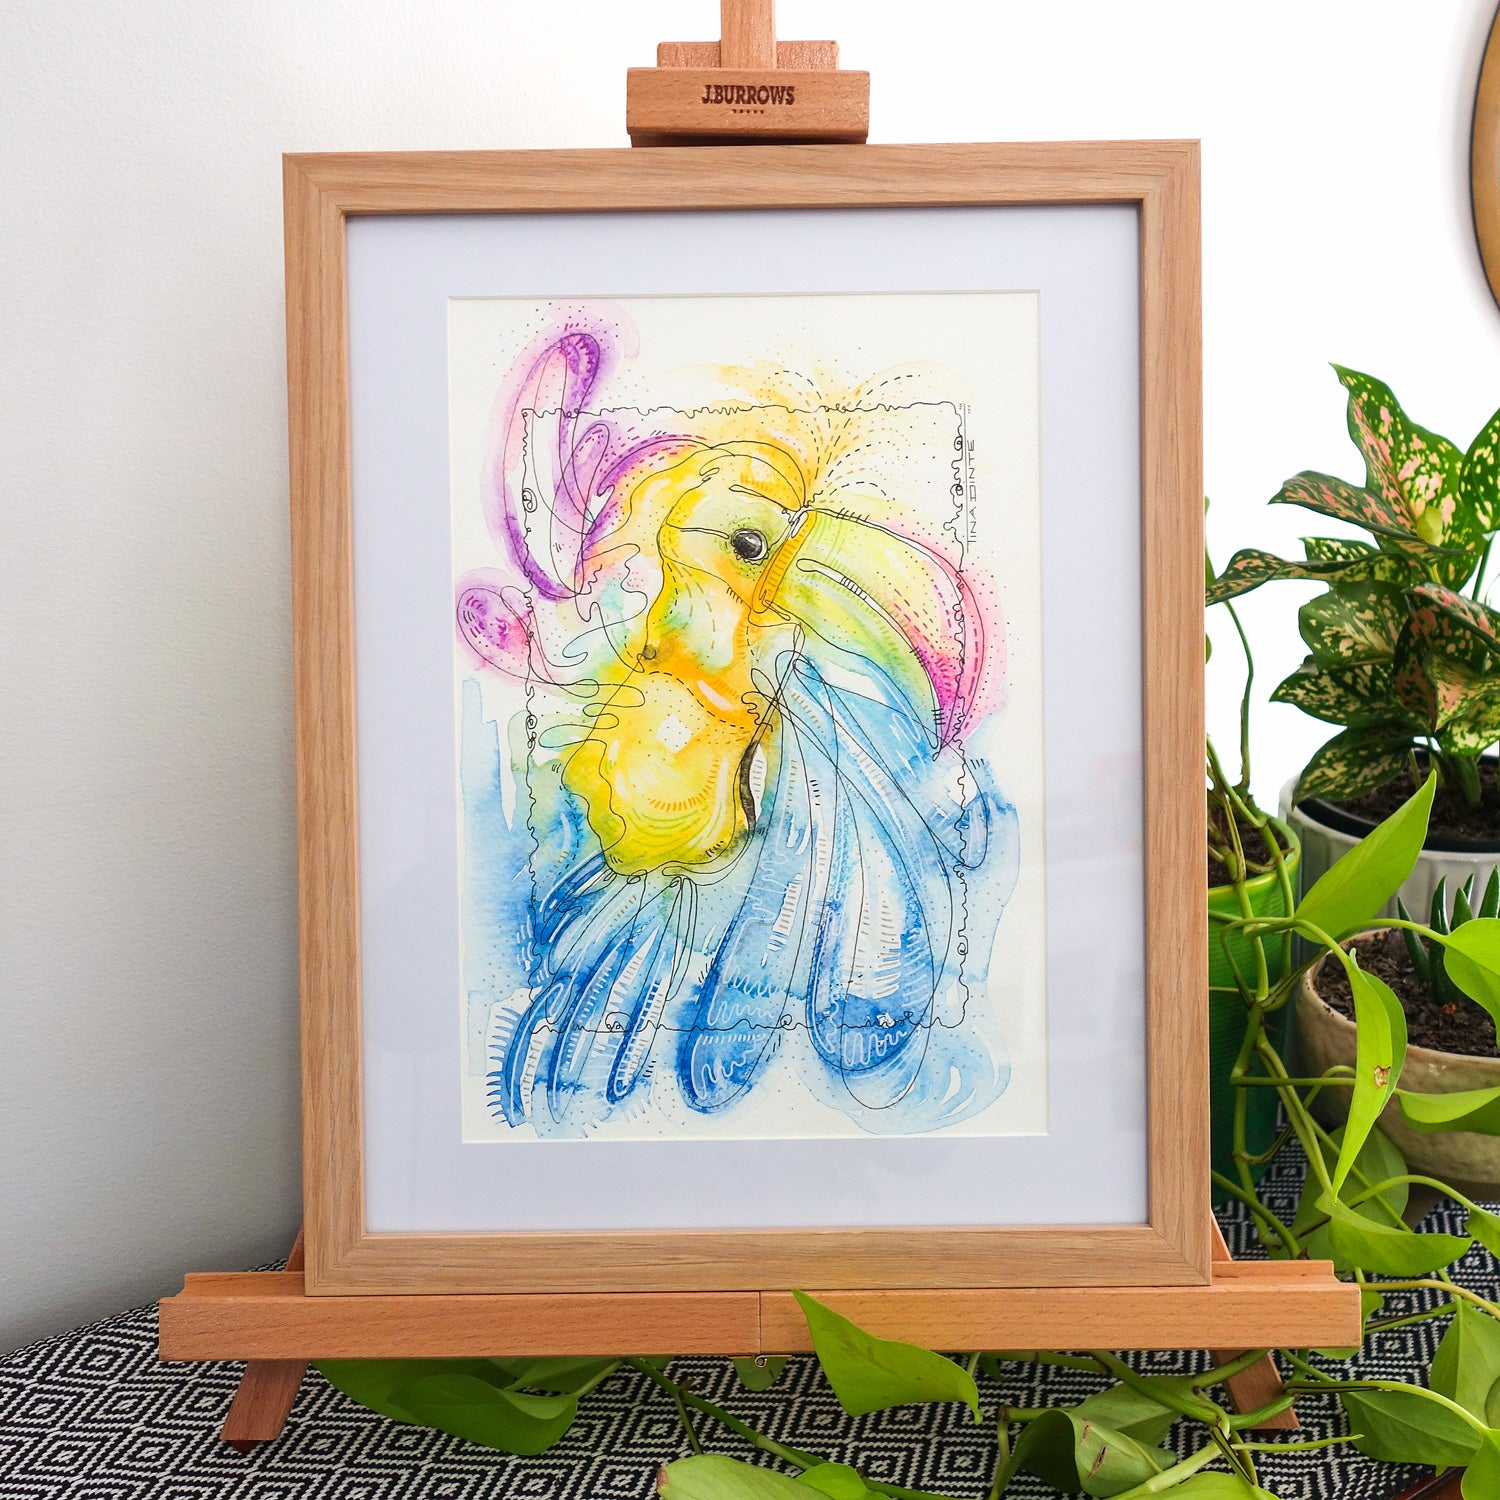 Tammy Toucan Framed Original Illustration